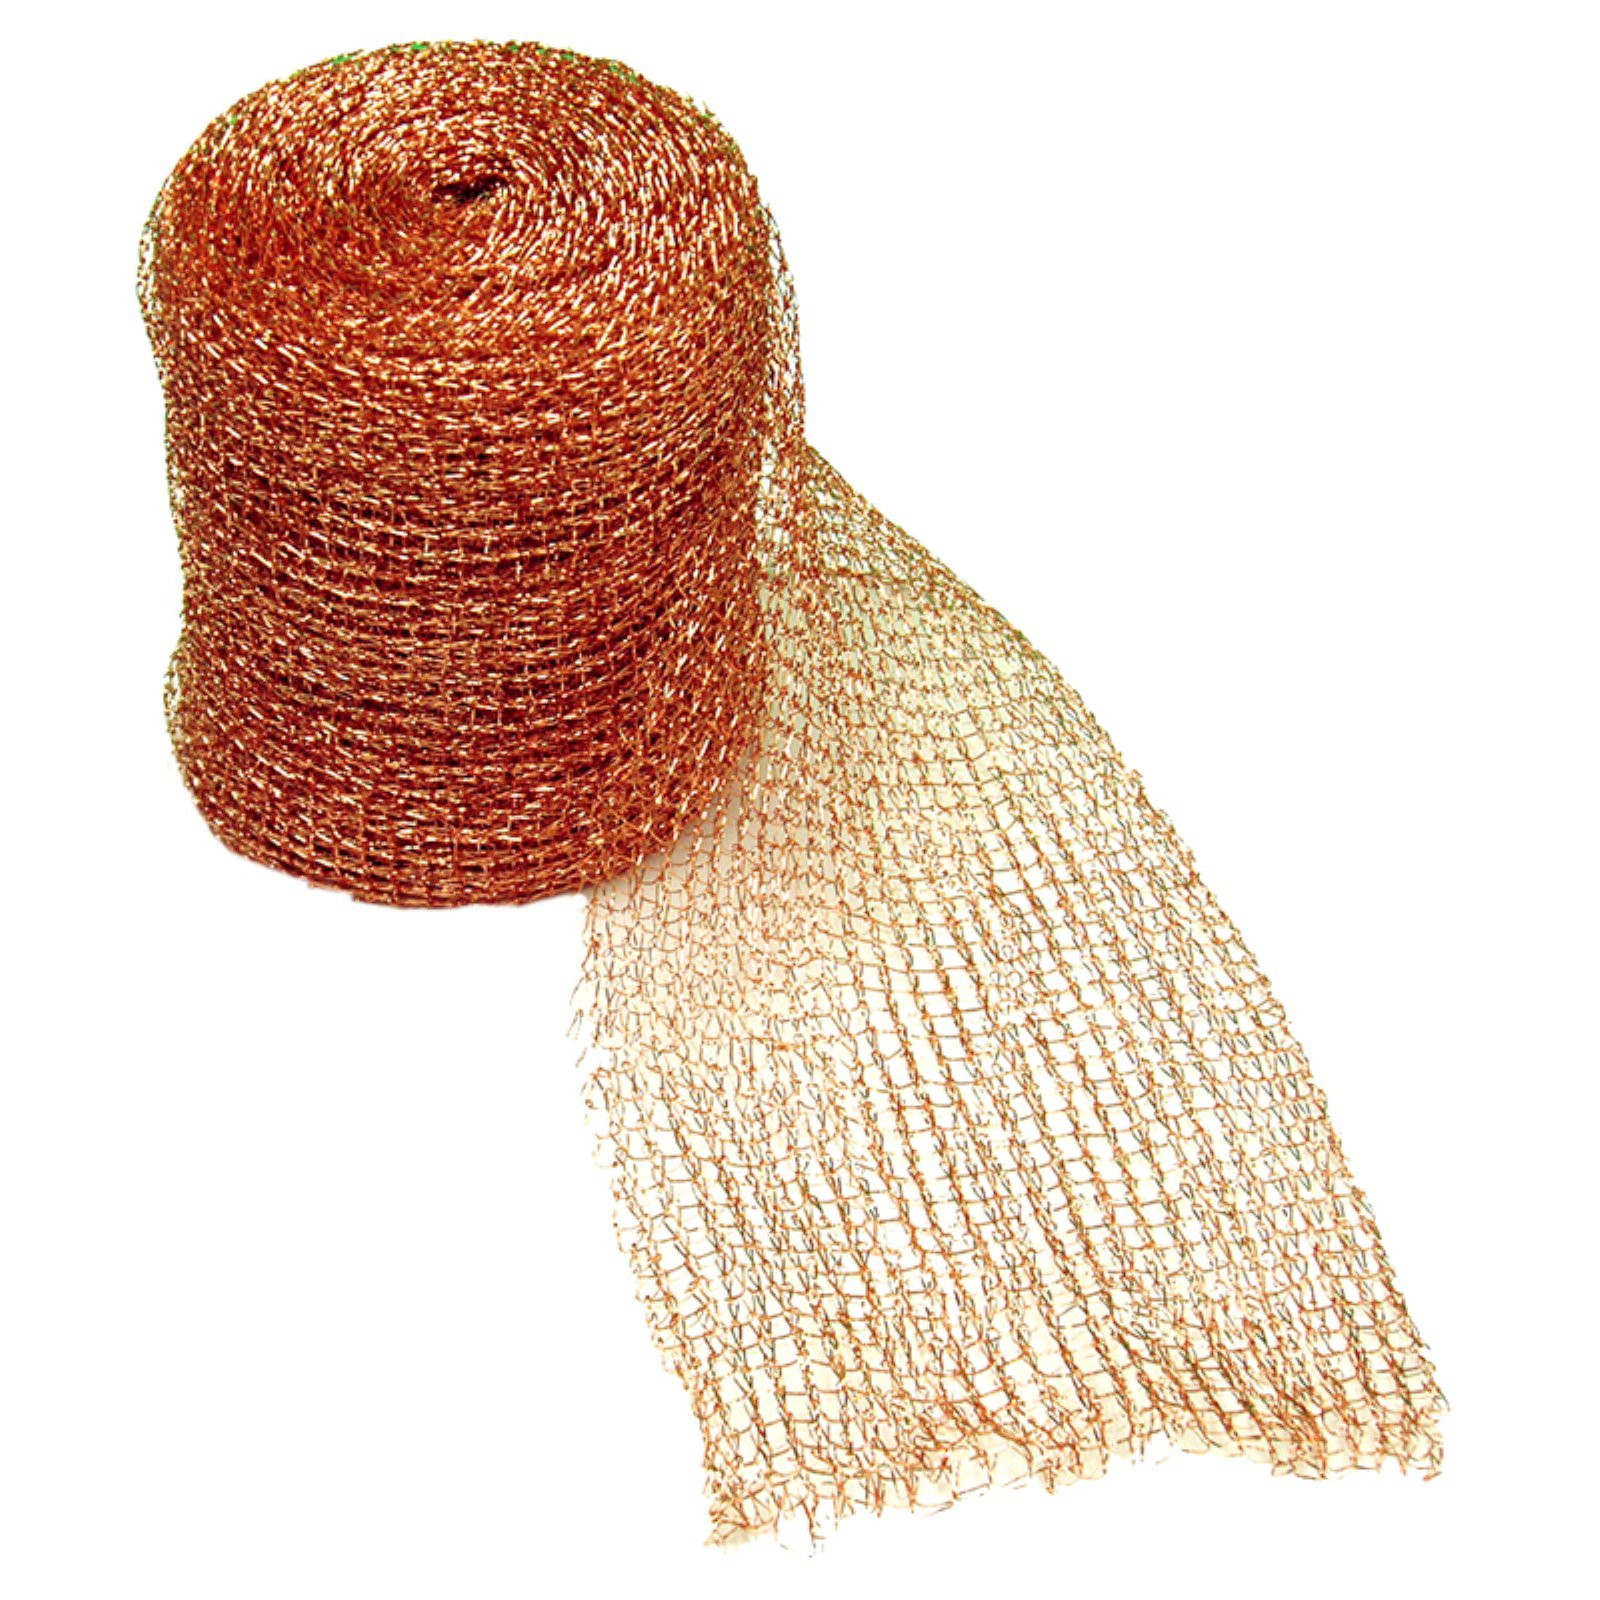 Bird B Gone Copper Mesh 100 ft. Roll for Rodent and Bird Control